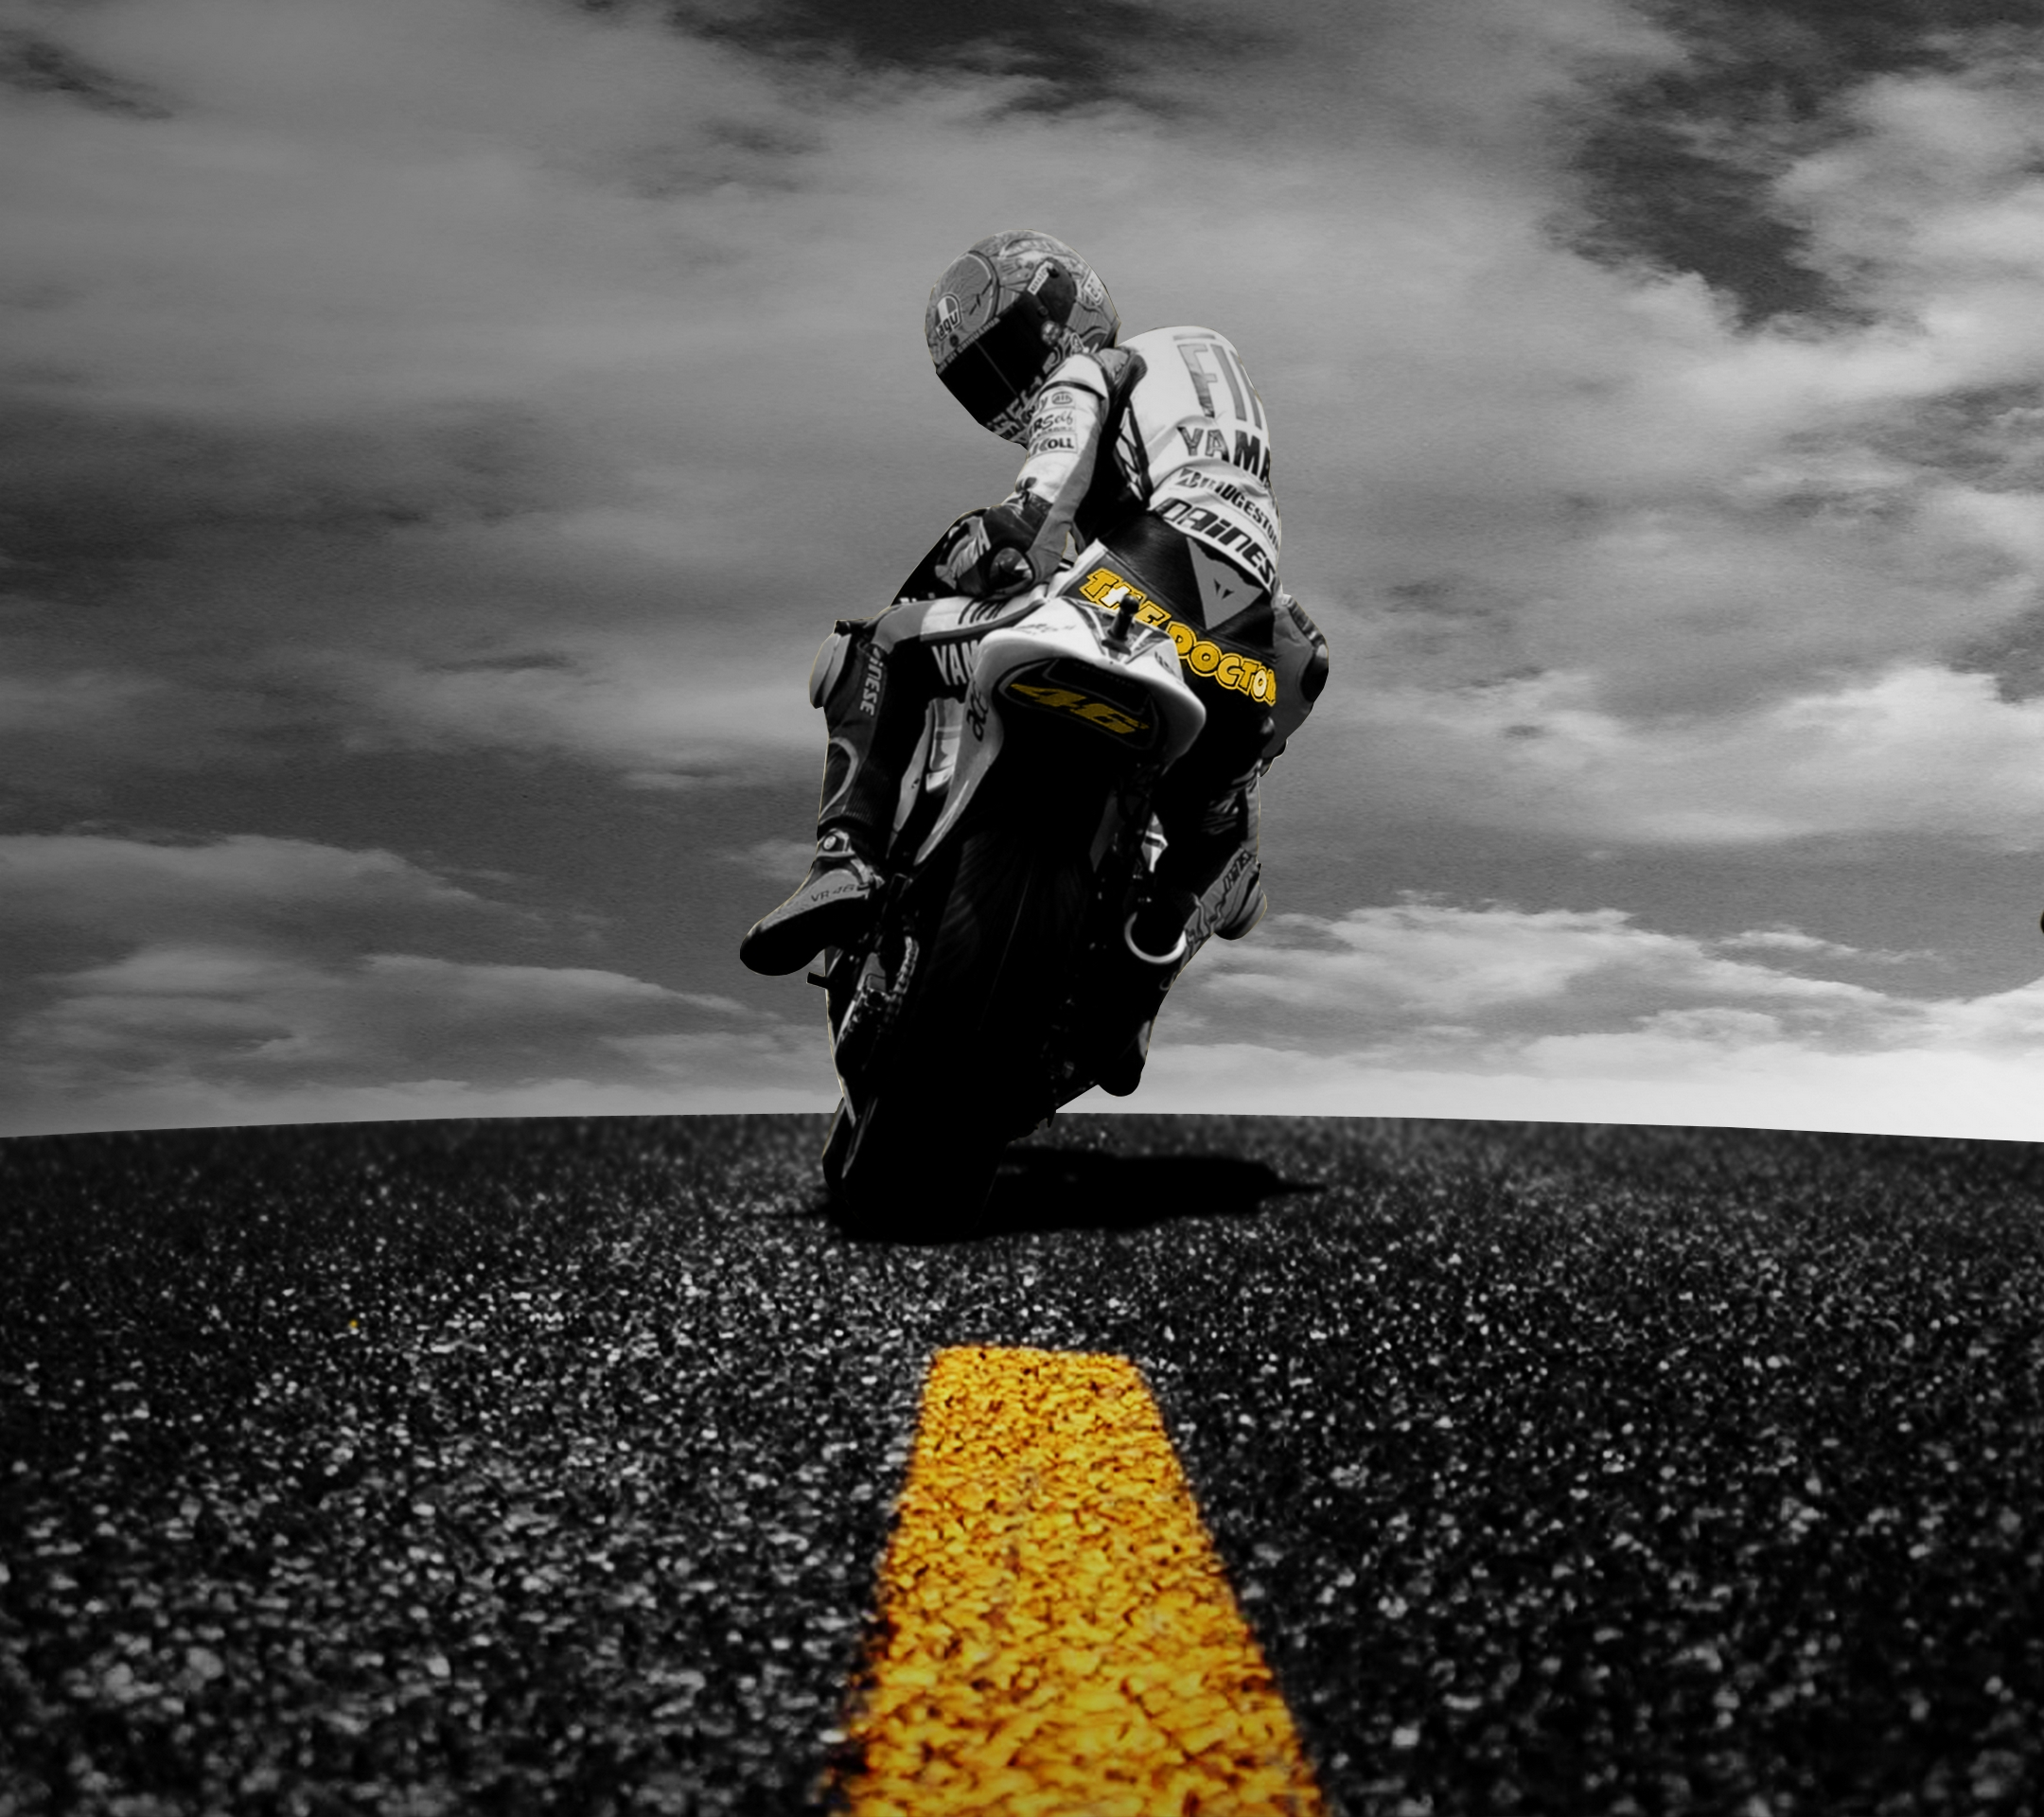 Full Hd Motorcycle Wallpaper 2 Valentino Rossi Hd Wallpapers Background Images